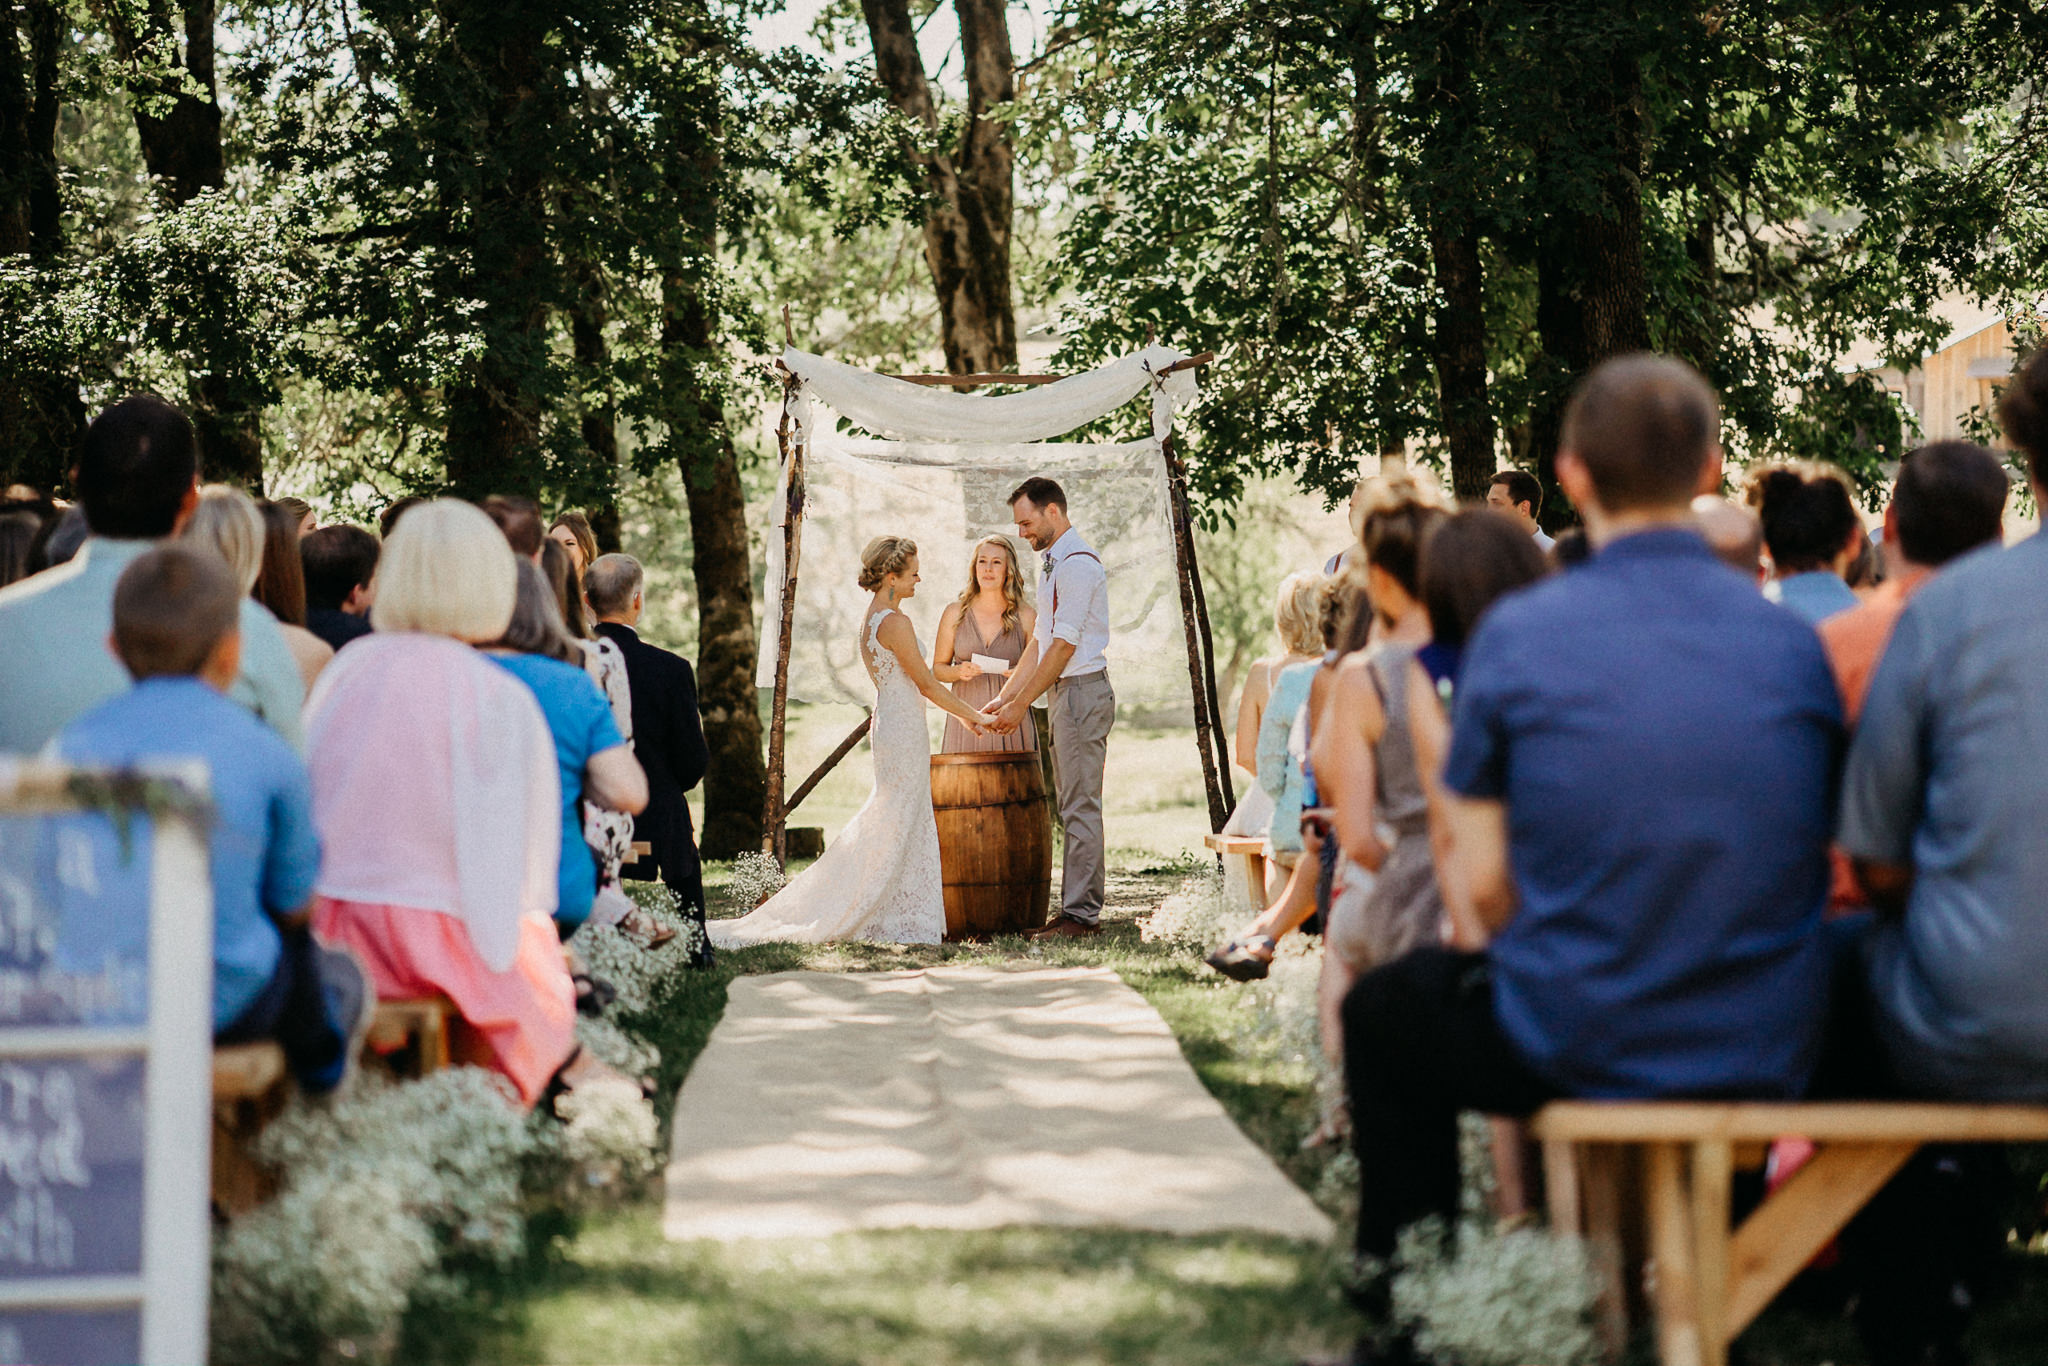 Summerhill-Farms-Portland-Wedding-Photographer-Backyard-Vineyard-38.jpg